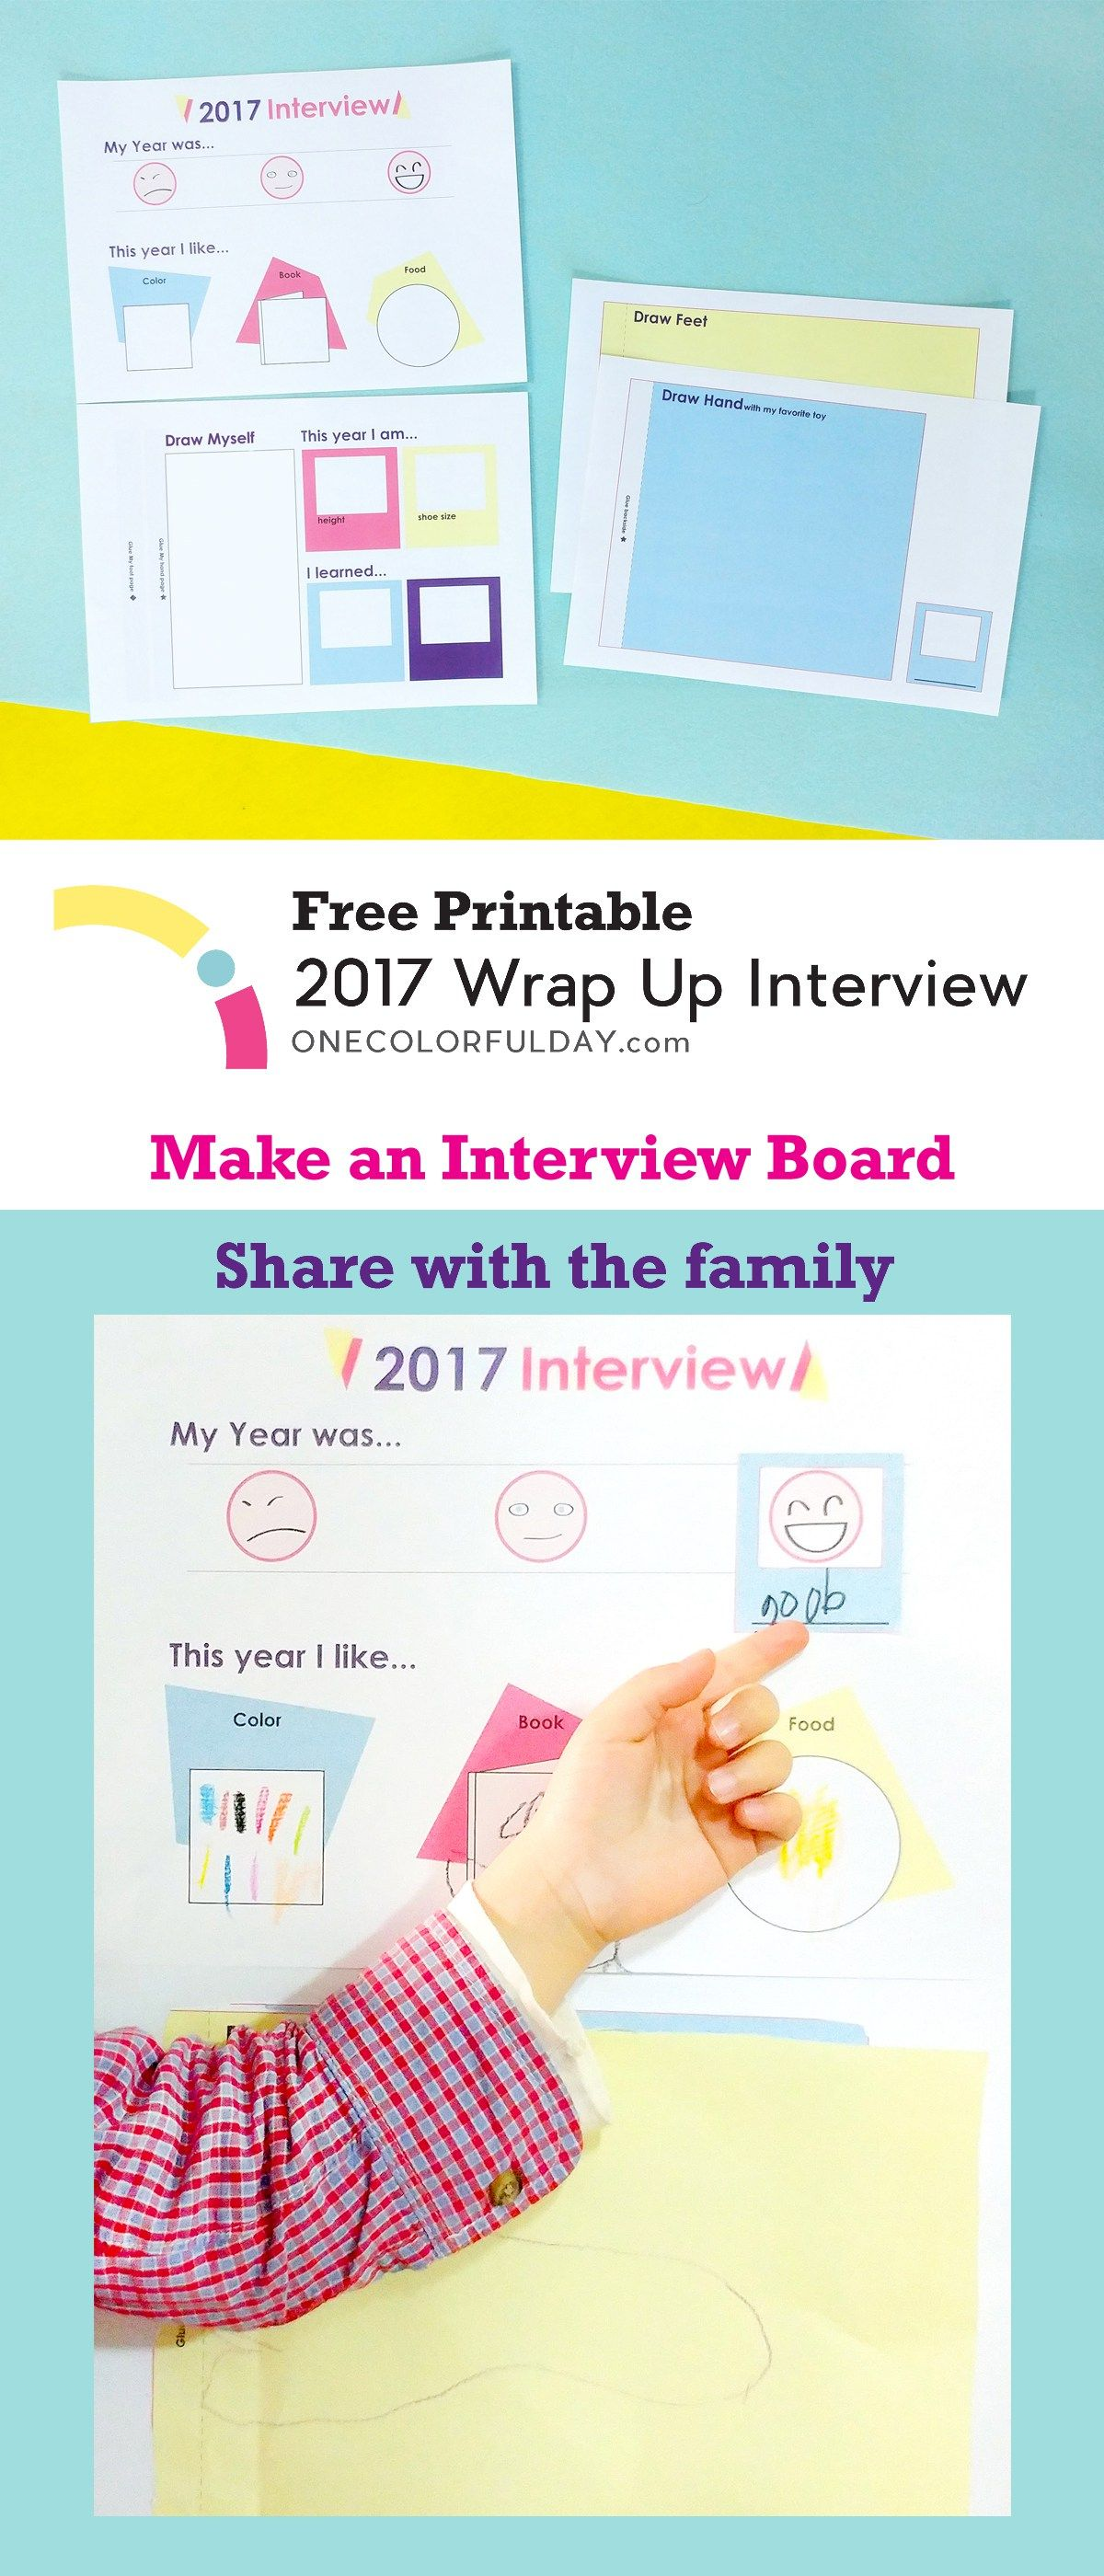 Printable Wrap Up Interview